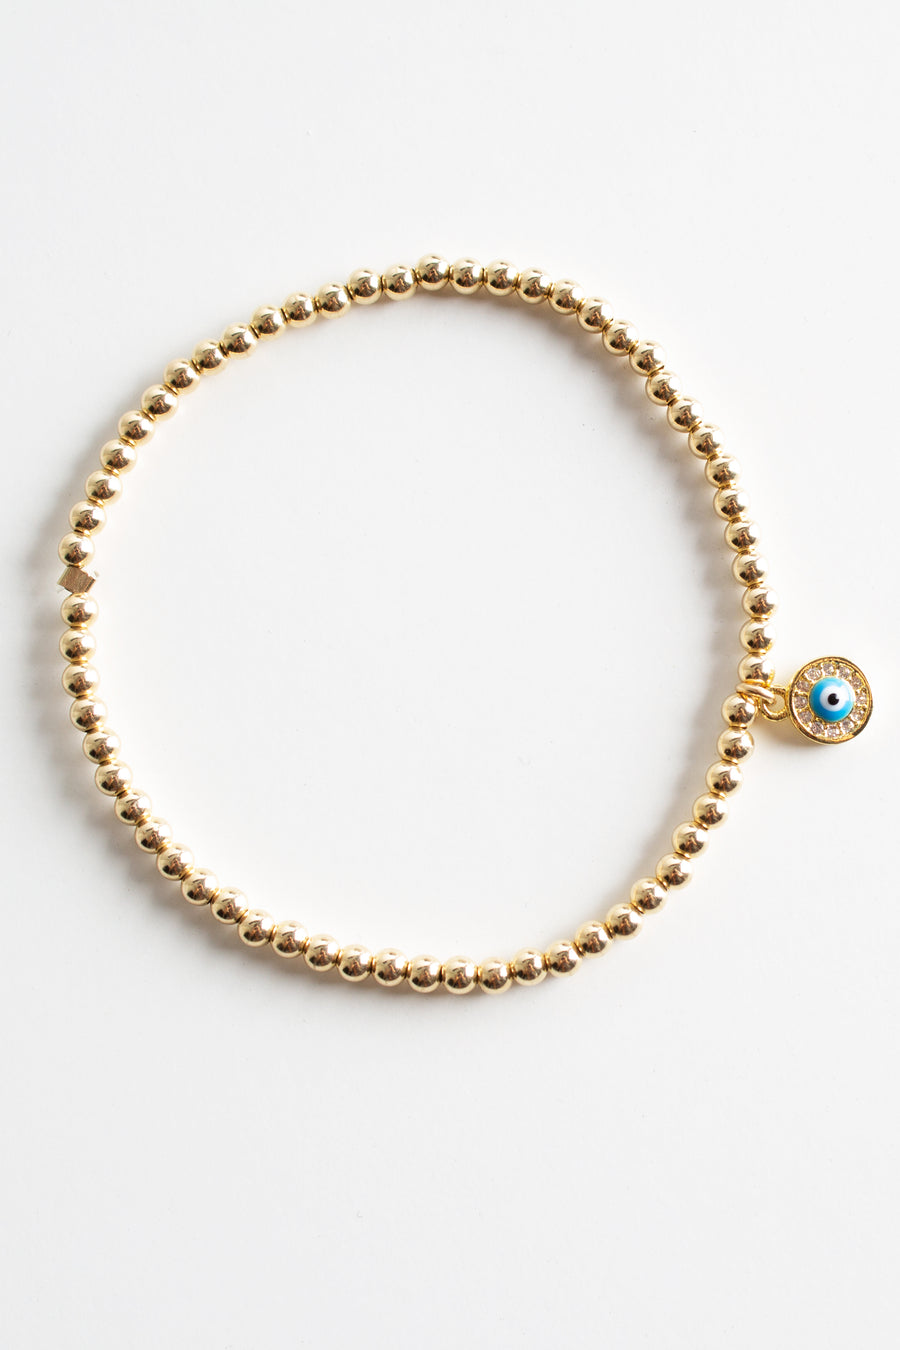 Evil Eye Beaded Stretch Bracelet - Round Mini Eye Charm - Pavilion